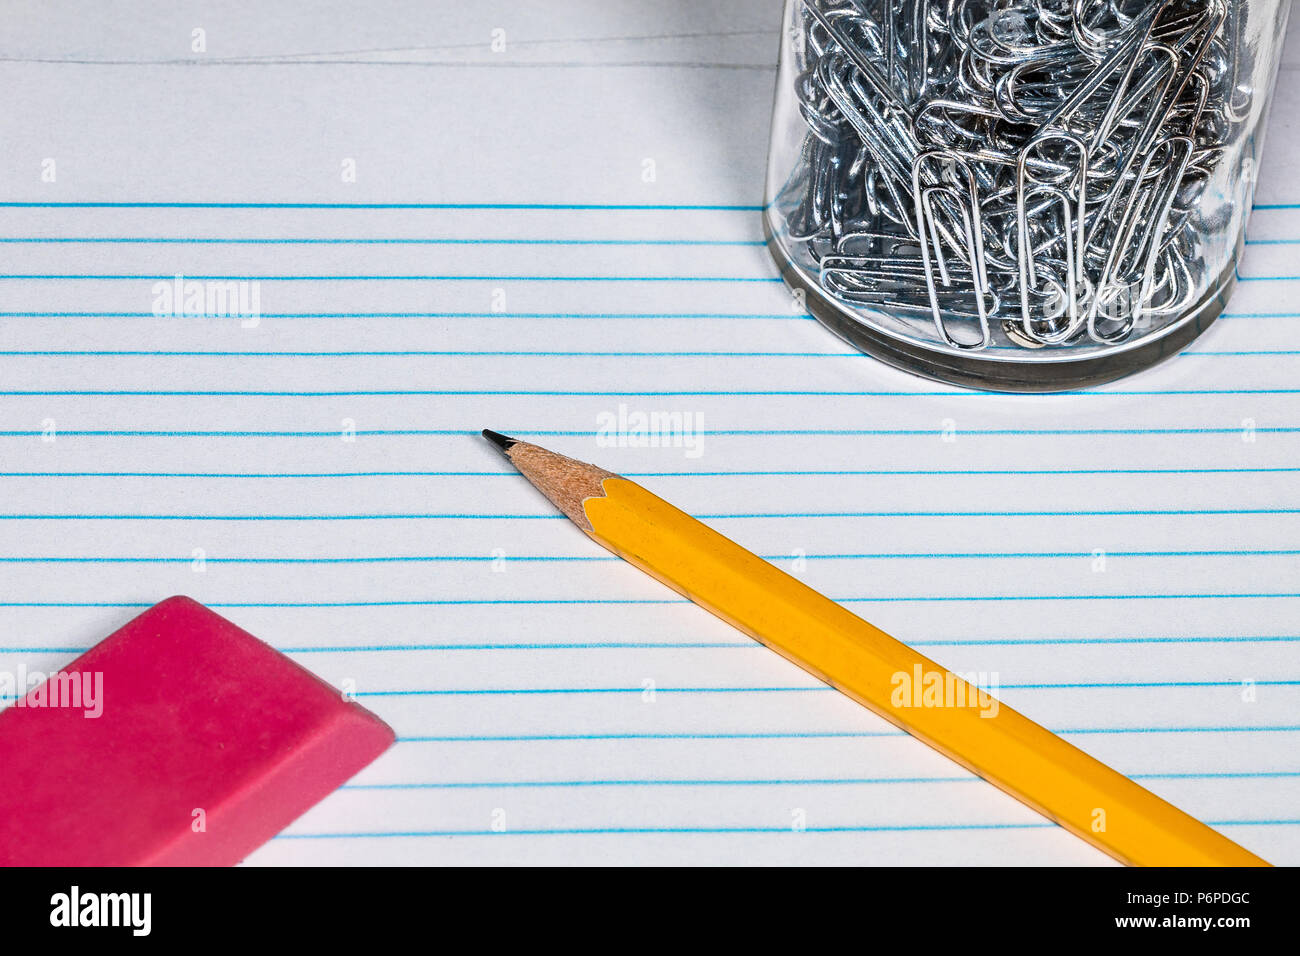 a #2 Pencil, Eraser, paper clips and Filler paper with plenty of room for Copy. - Stock Image